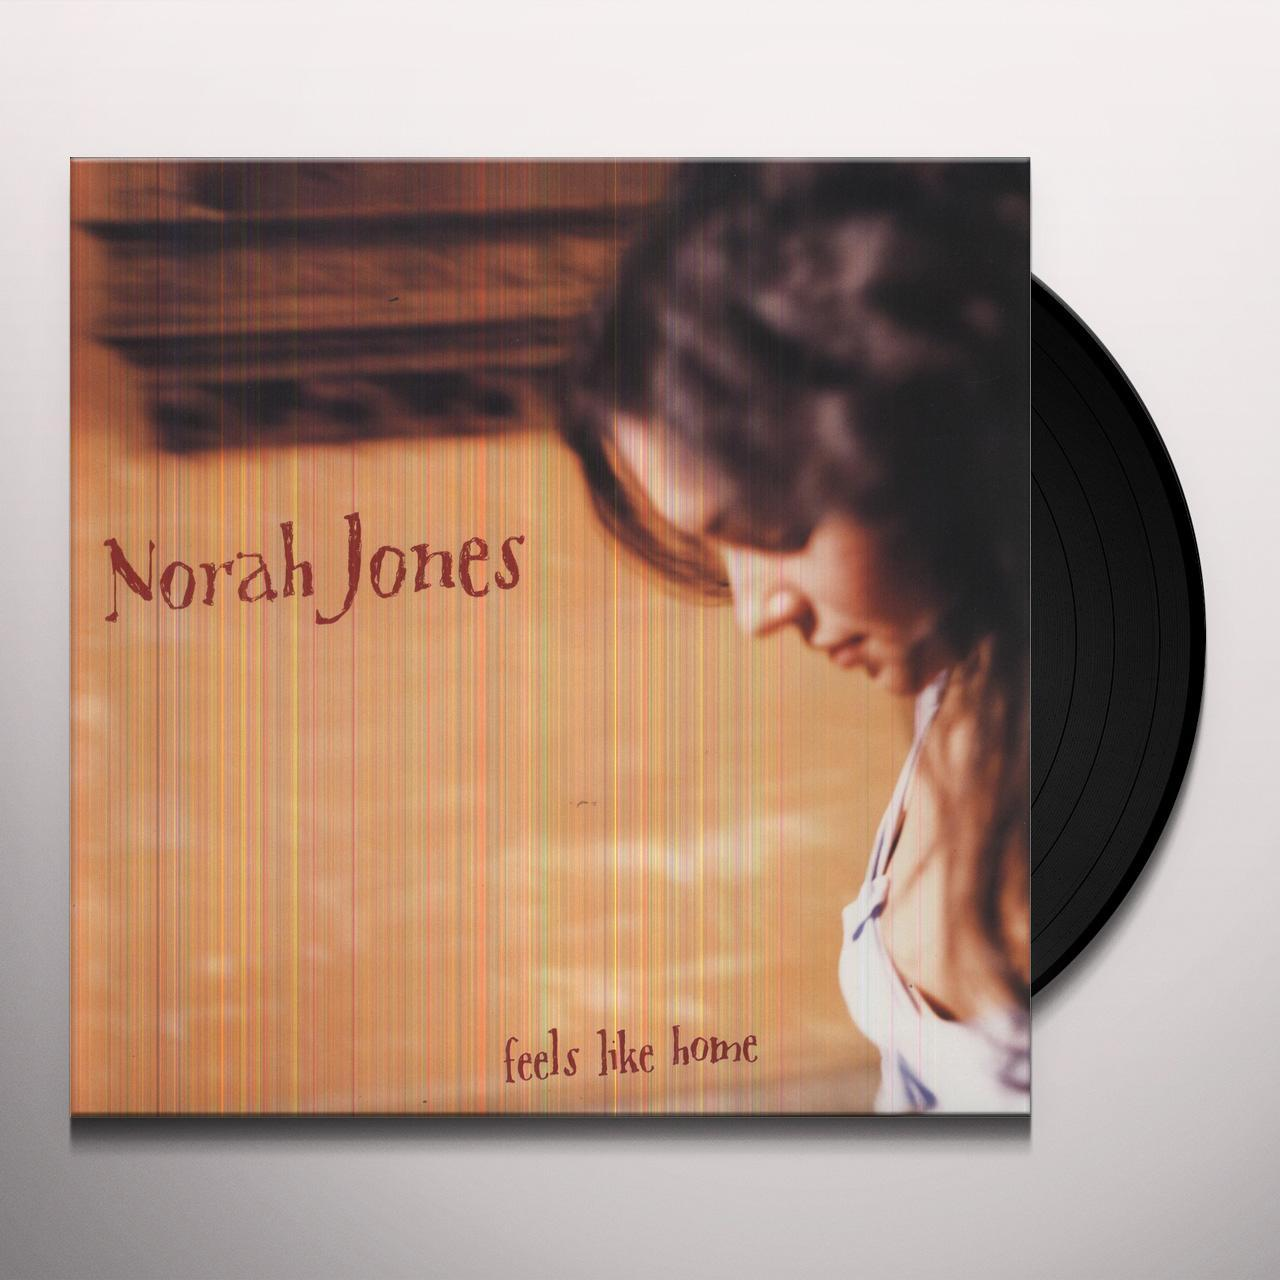 norah jones feels like home vinyl record. Black Bedroom Furniture Sets. Home Design Ideas